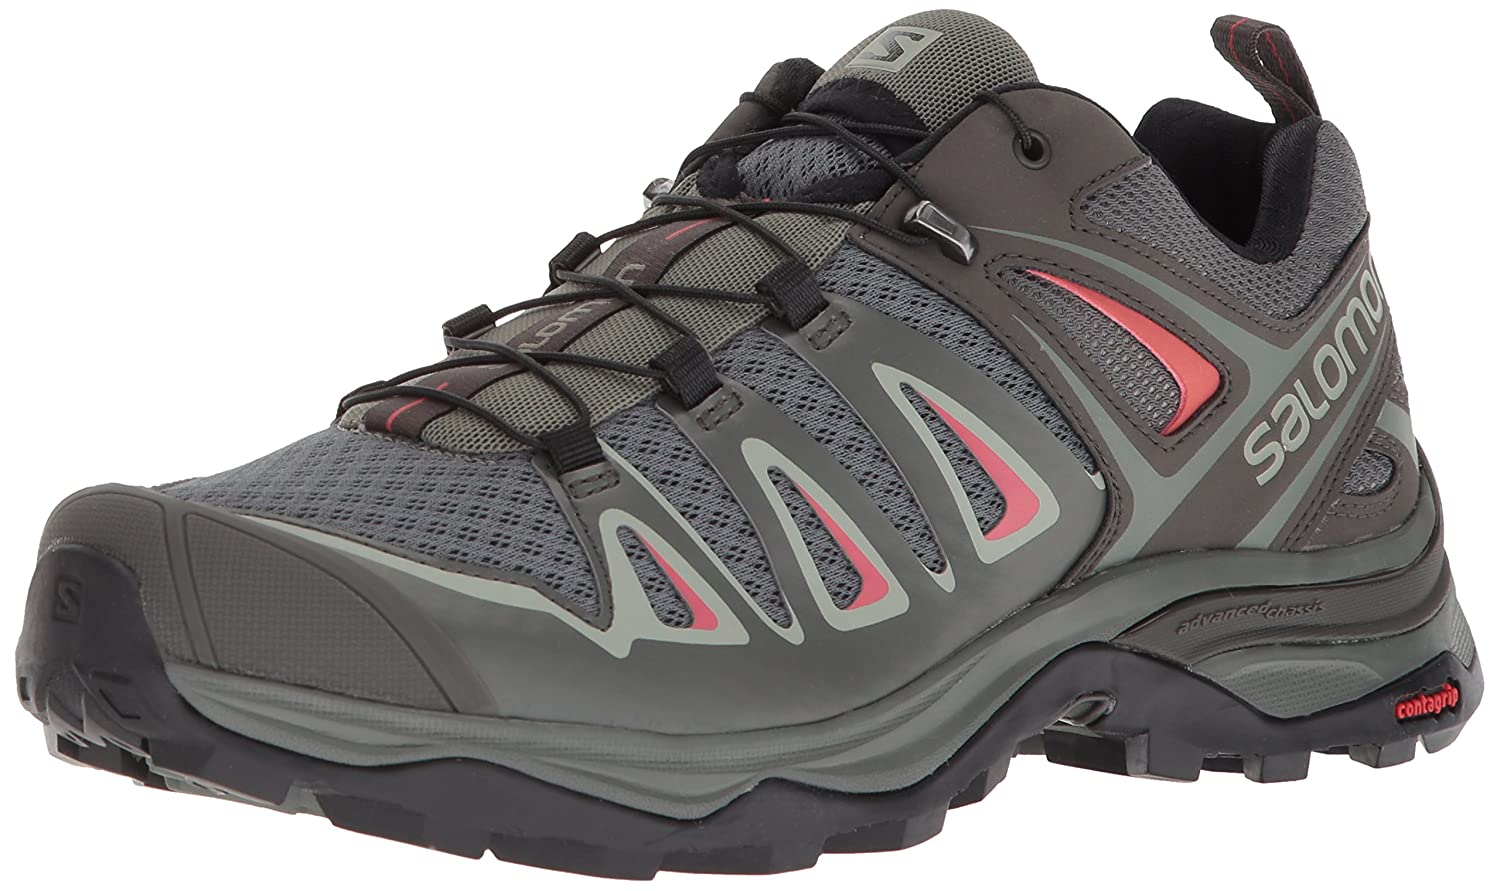 Salomon Women's X Ultra 3 W Hiking Shoes B072PPXZMN 9 B(M) US|Shadow